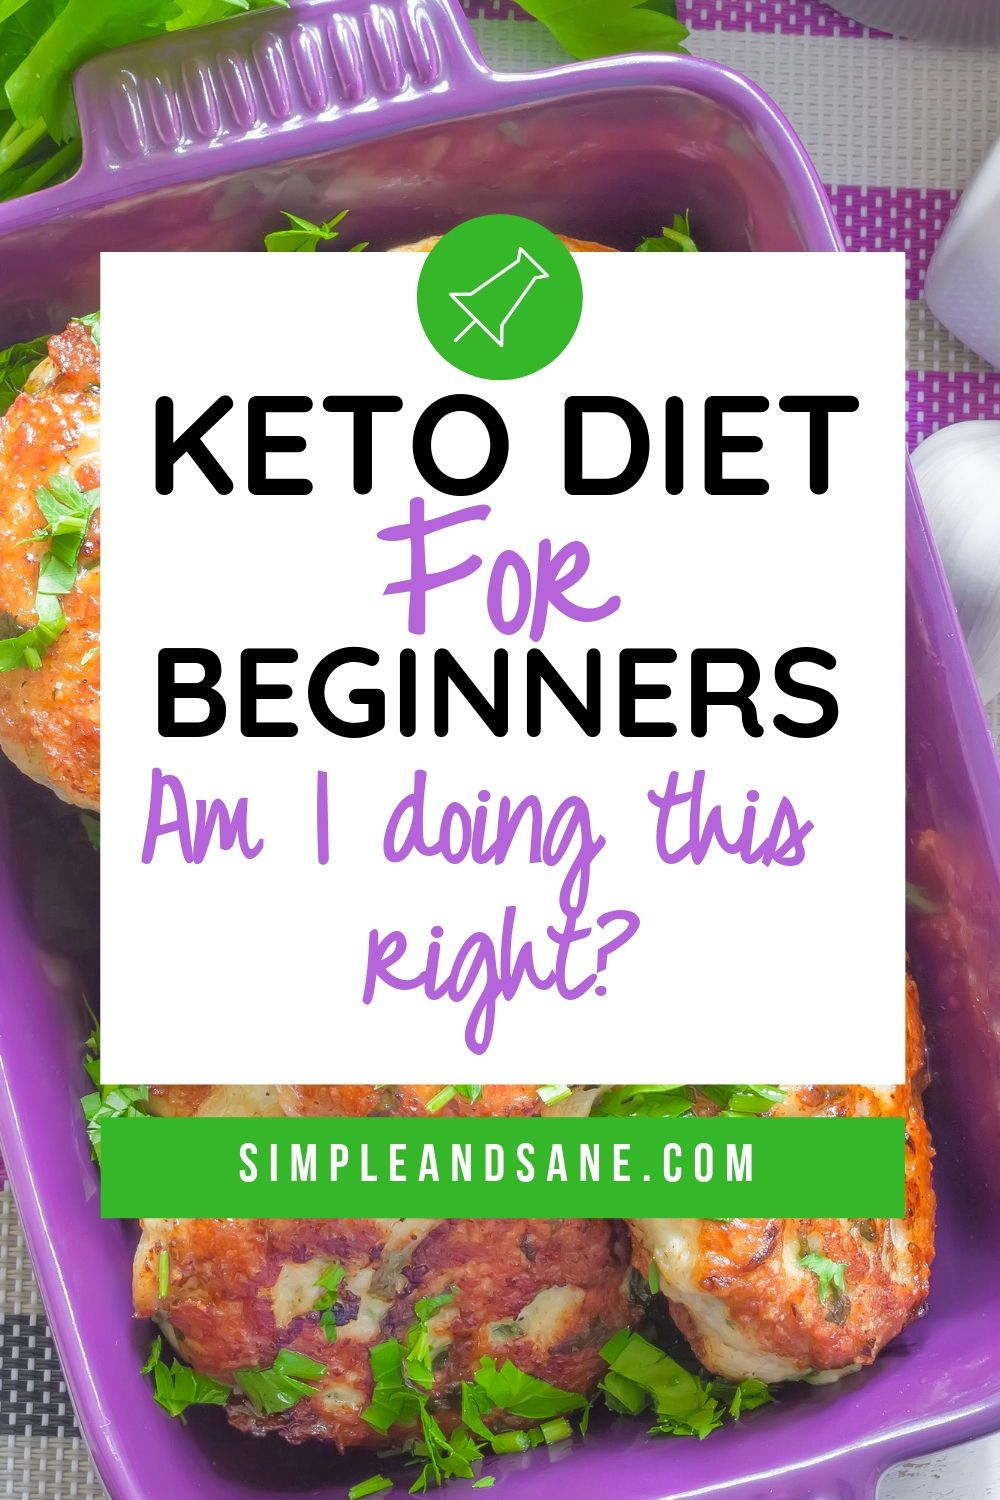 Is There a Keto Diet for Beginners? Tell Me What to do to Lose Weight! #ketodietforbeginners